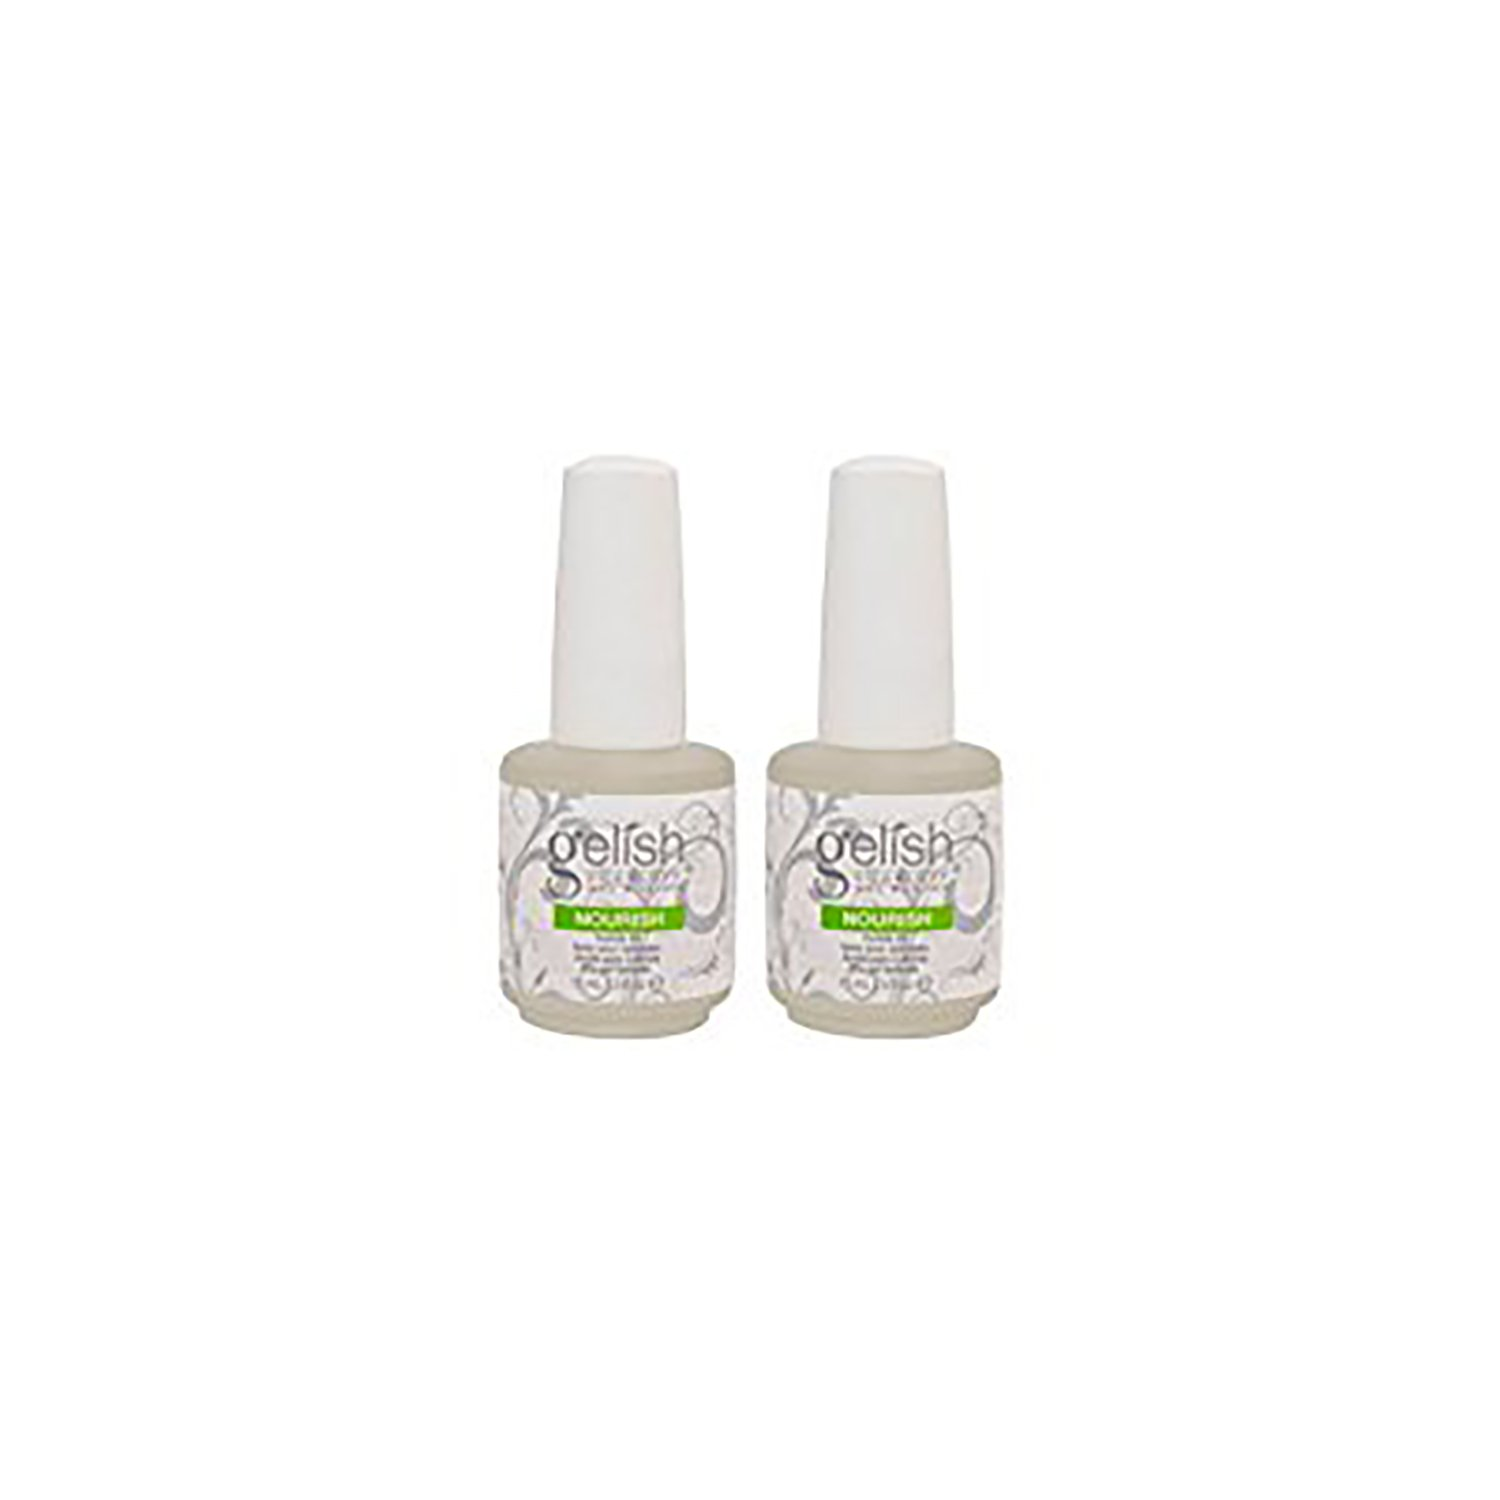 Best Rated In Cuticle Creams Oils Helpful Customer Reviews Allegra Cream Army City Diaper Bag 2 Harmony Gelish Nourish Nail Hydrating Natural Oil Treatment 5oz Bottle Product Image